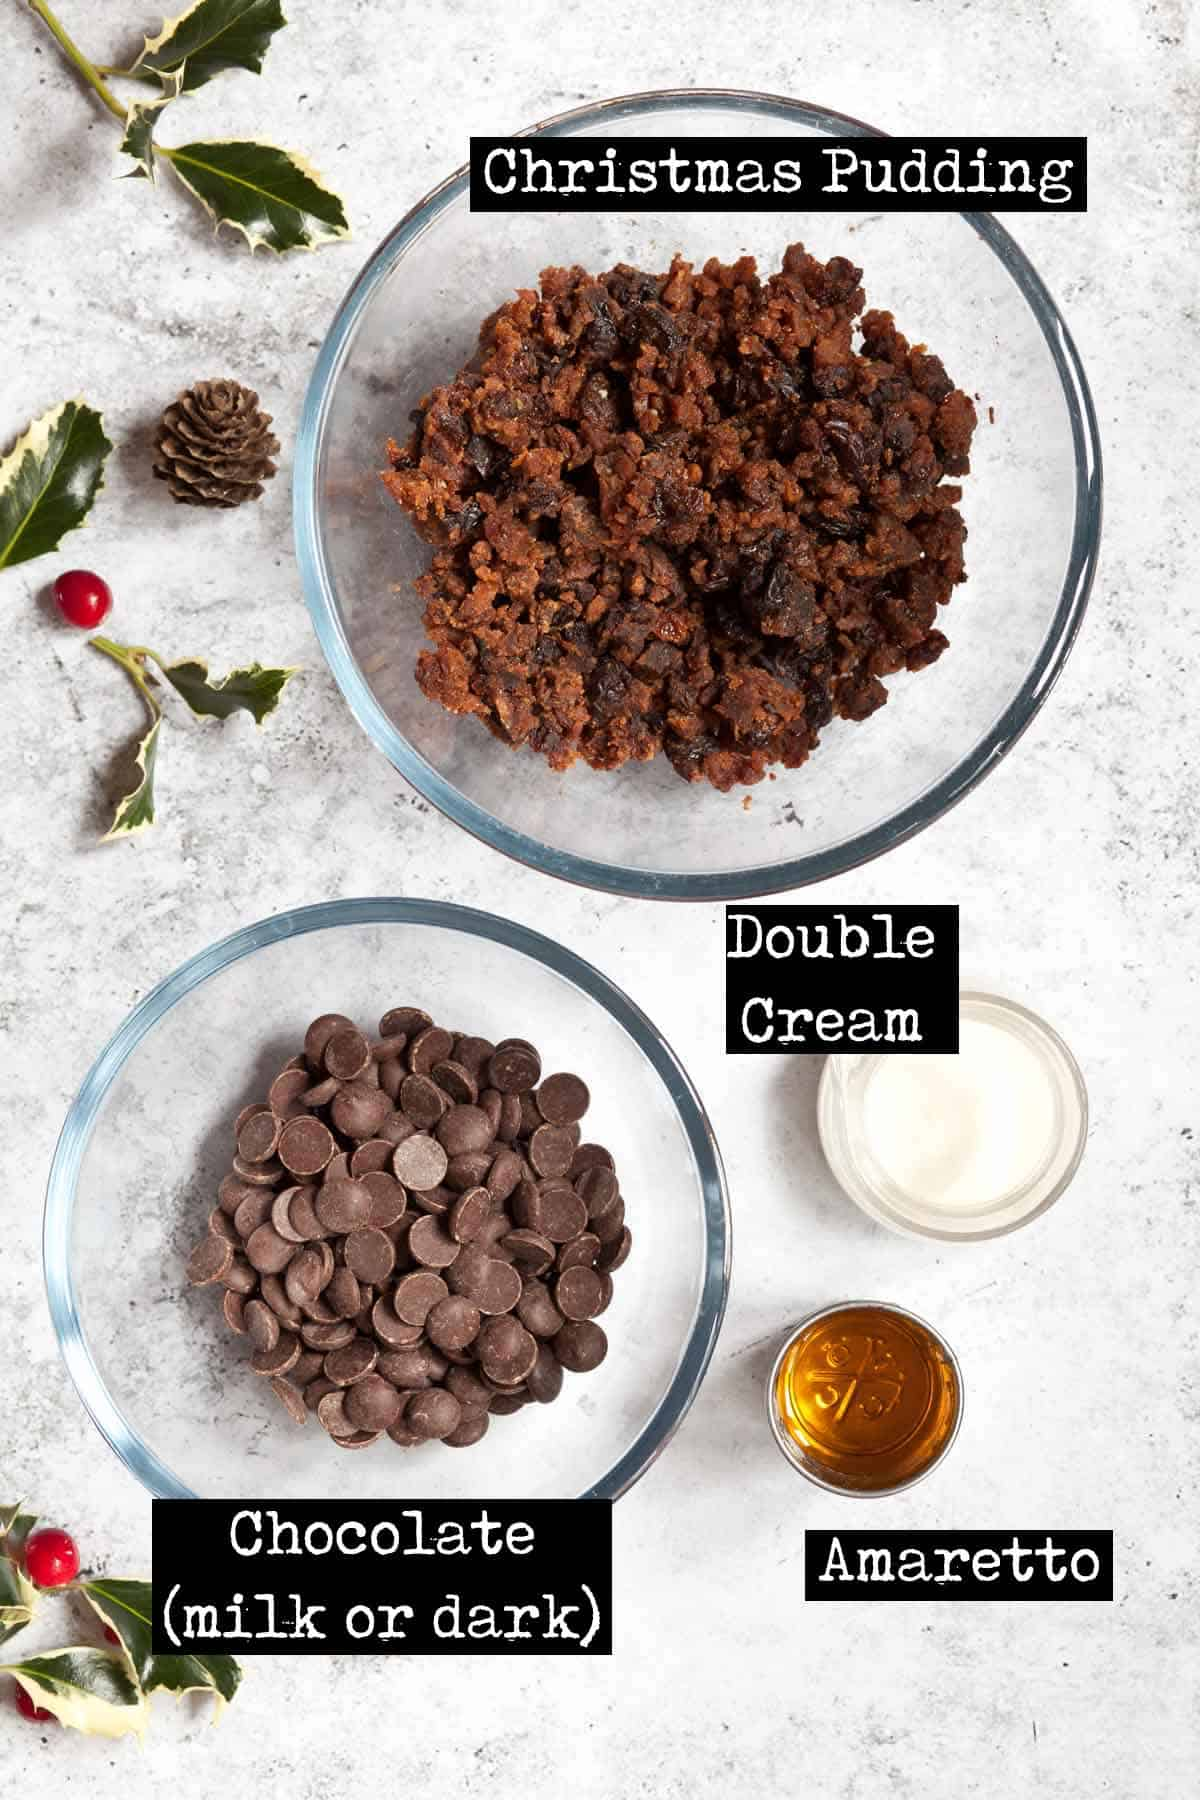 Ingredients for Christmas pudding chocolates with text overlay